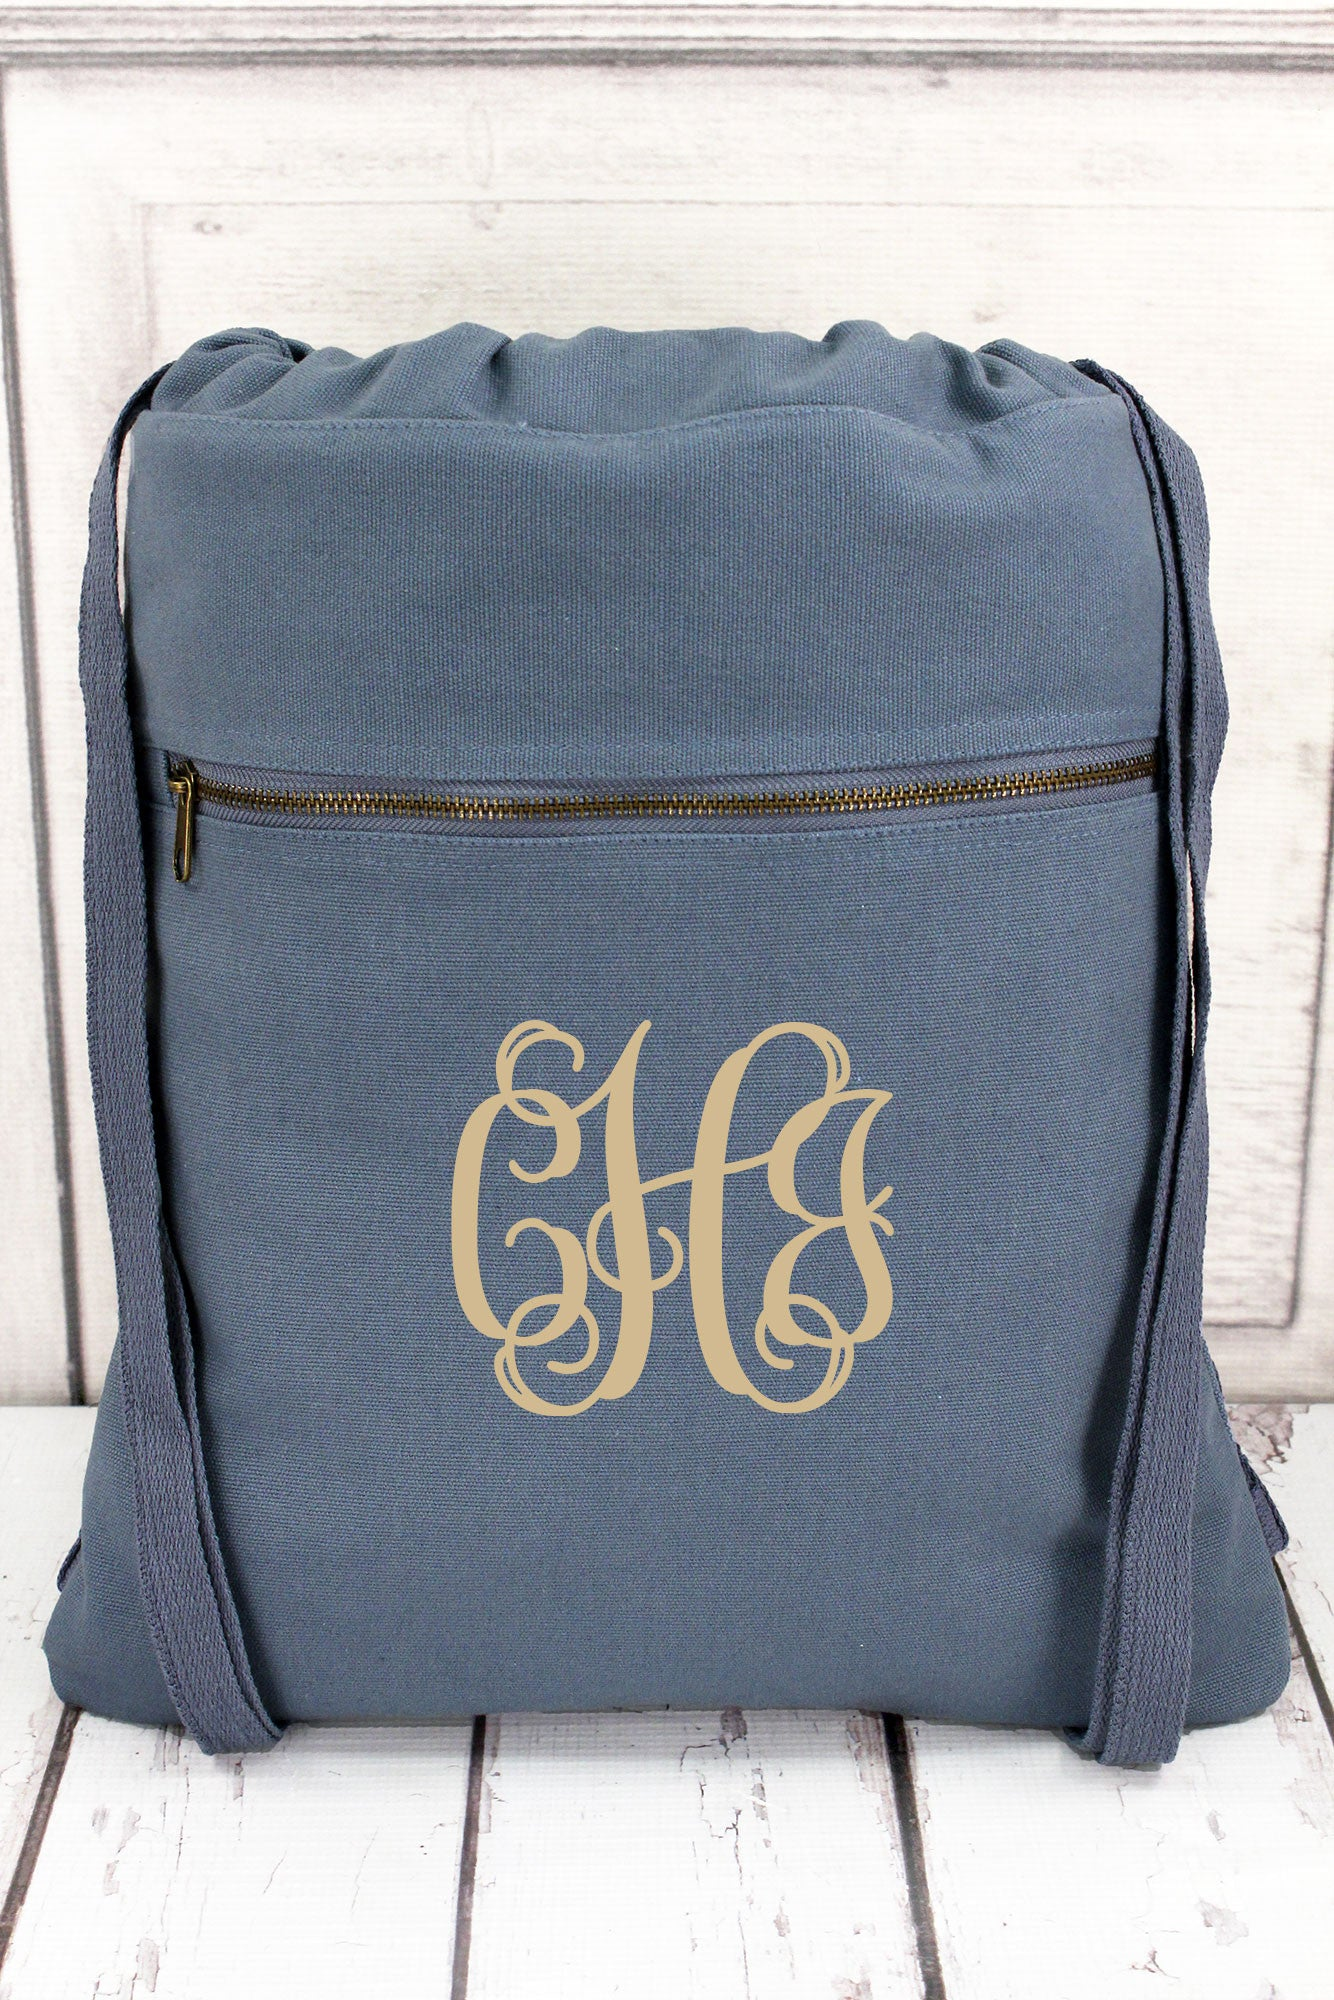 Blue Jean Comfort Colors Canvas Drawstring Backpack  CC0342  1aef9066c1ad